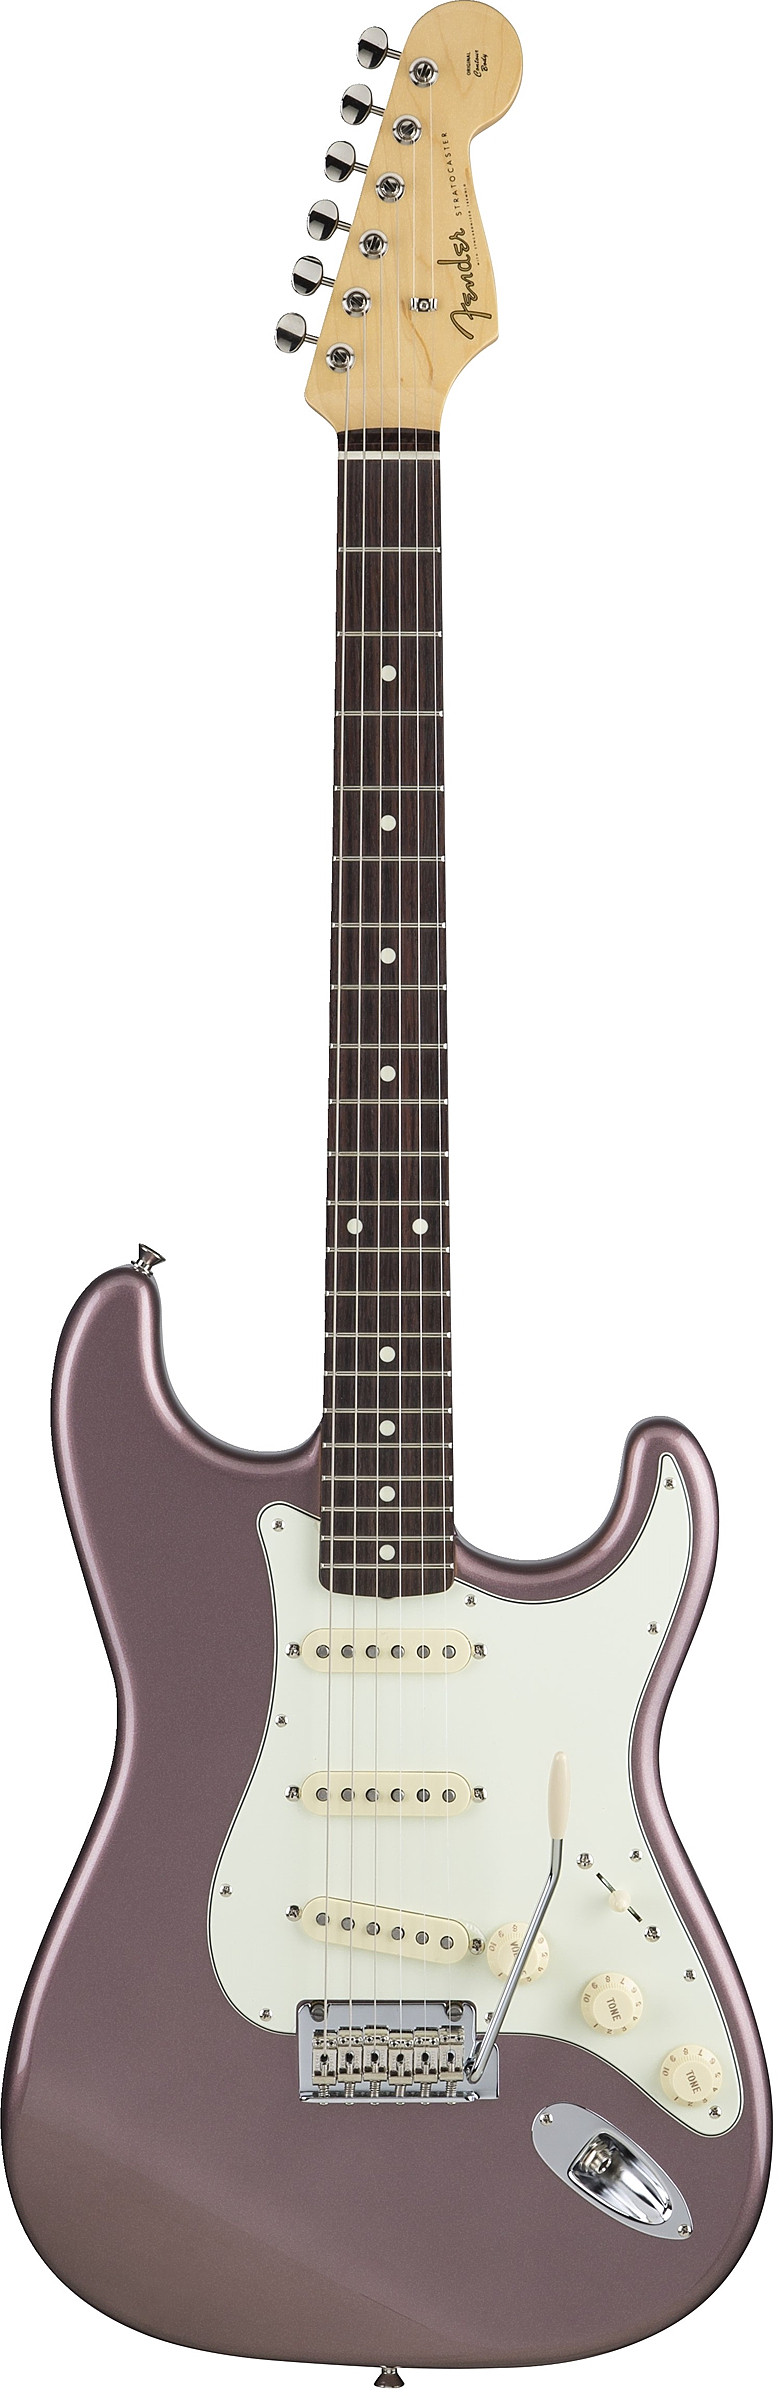 Made in Japan Hybrid `60s Stratocaster by Fender